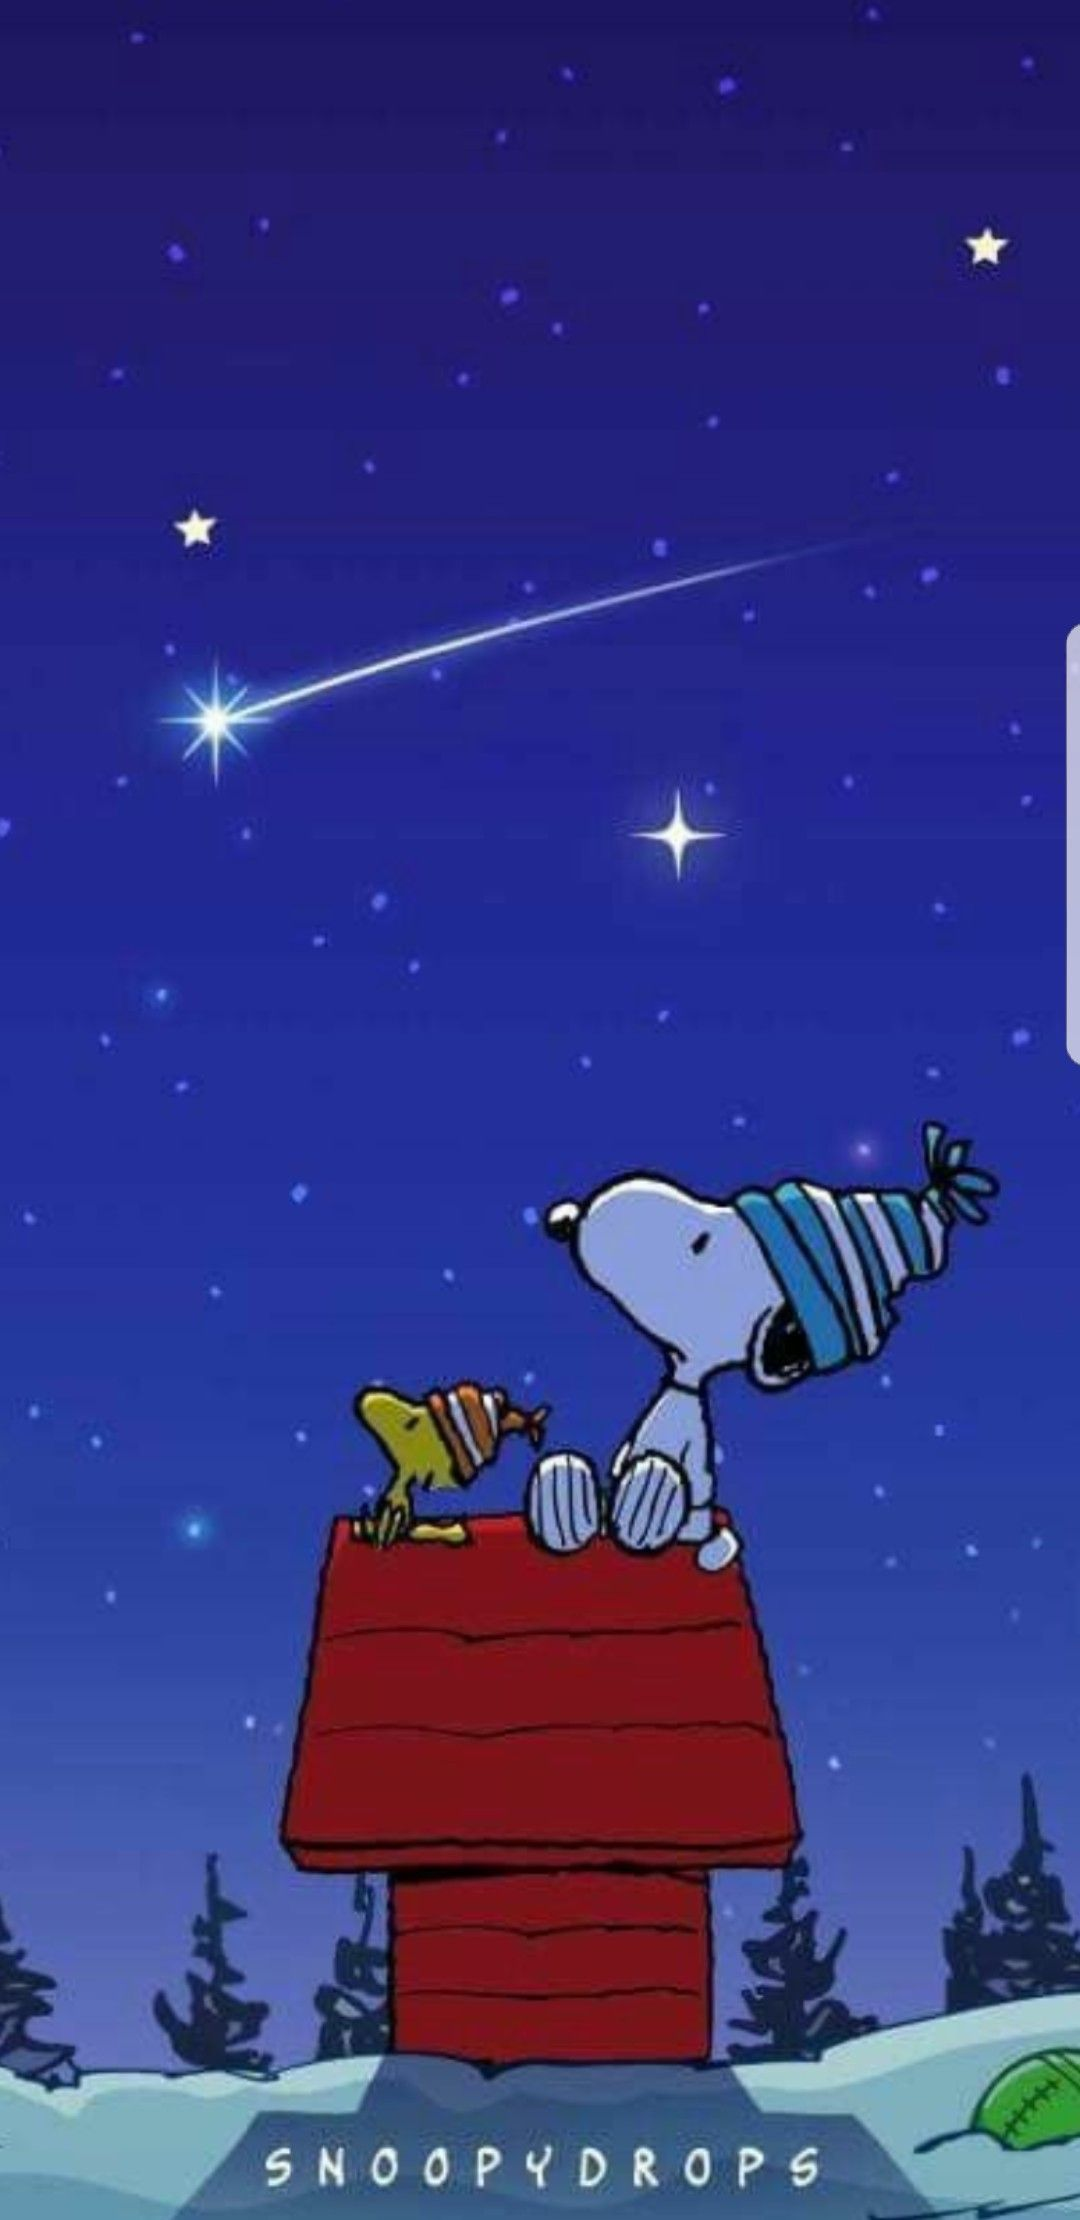 Snoopy And Woodstock 🌟🌟 Snoopy Christmas Snoopy